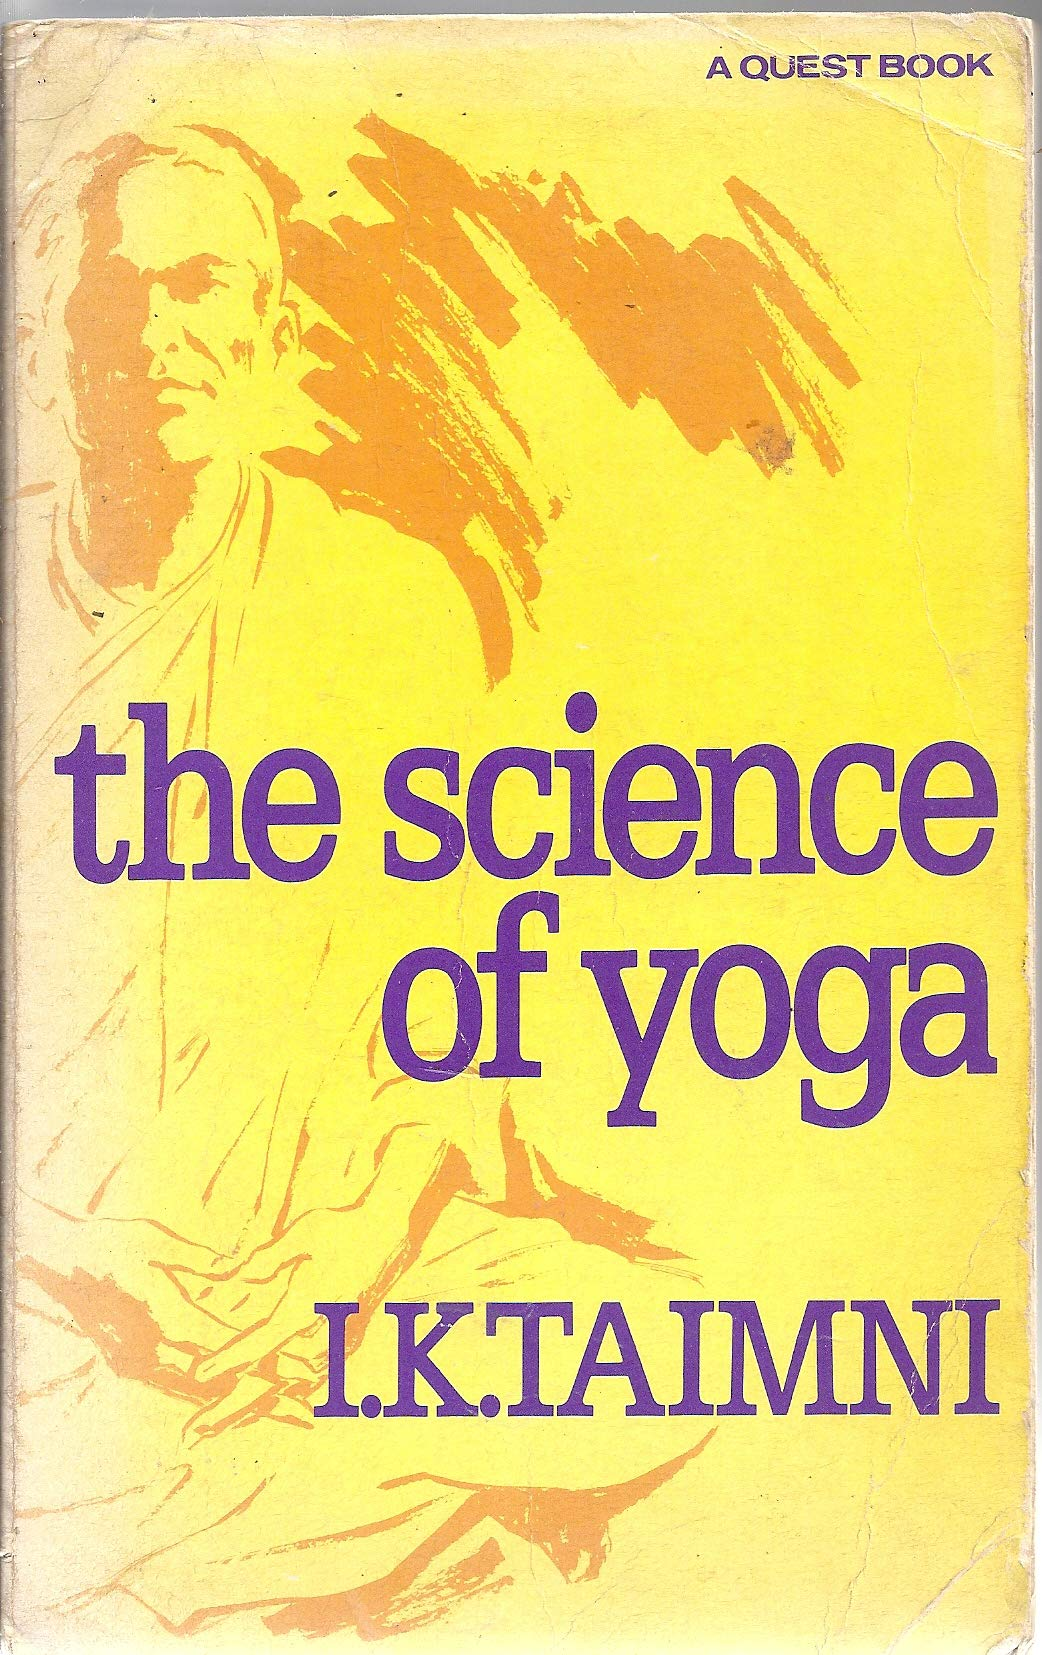 Amazon In Buy The Science Of Yoga The Yoga Sutras Of Patanajli In Sanskrit With Transliteration In Roman Translation And Commentary In English Paperback Book Online At Low Prices In India The Science